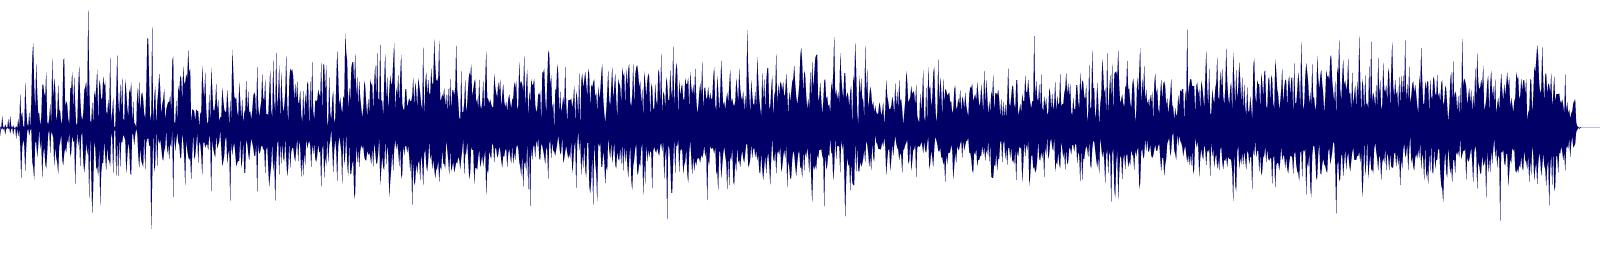 waveform of track #152325